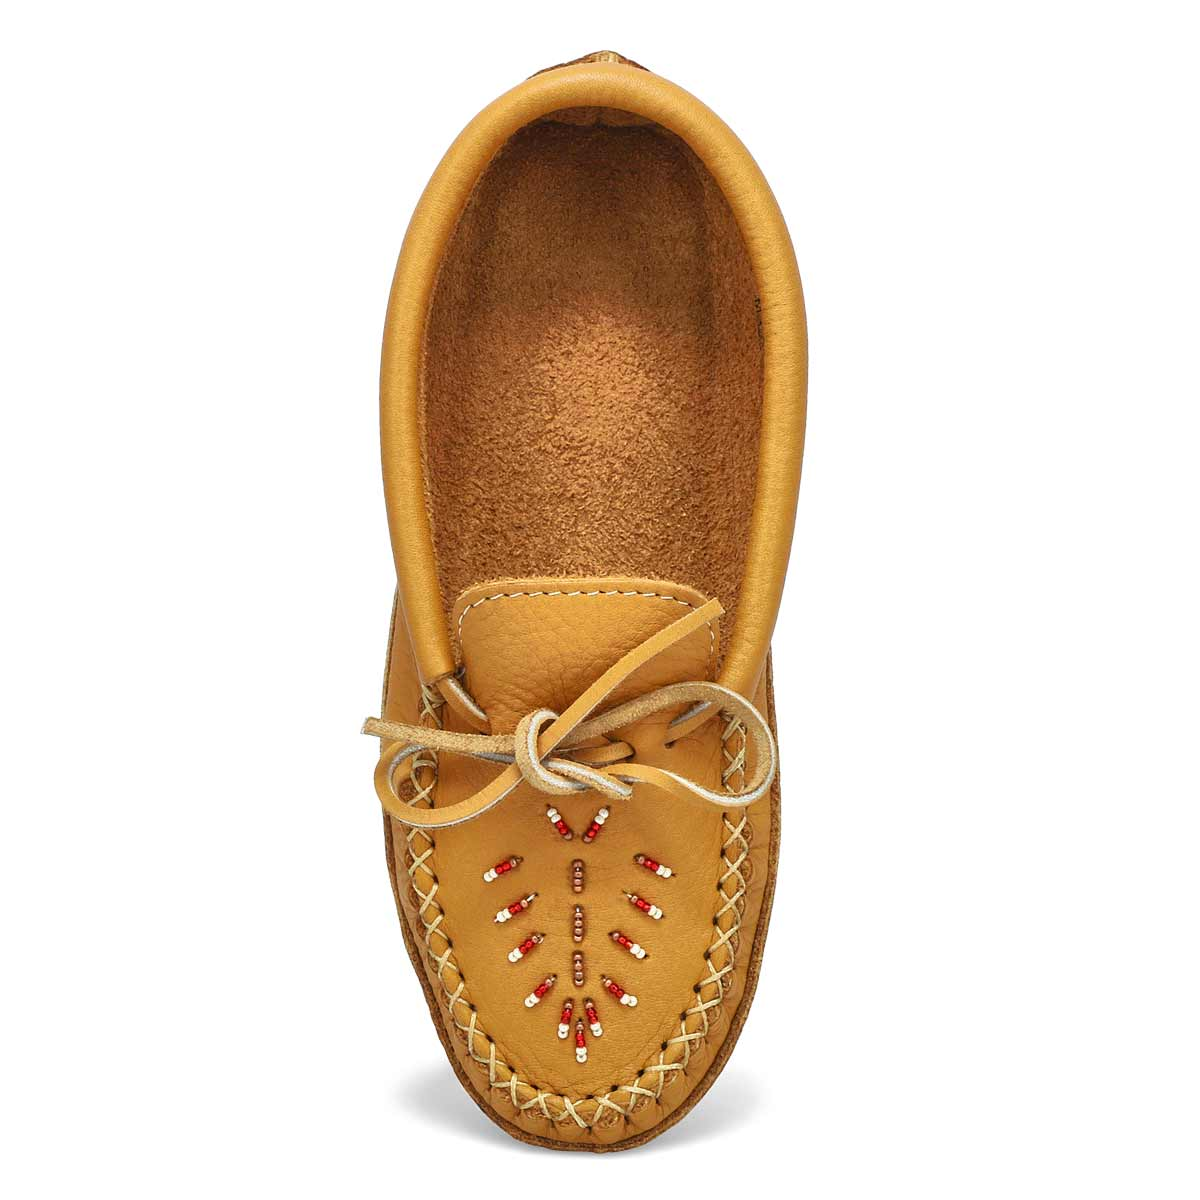 Women's 11526 Moccasin - Dark Tan